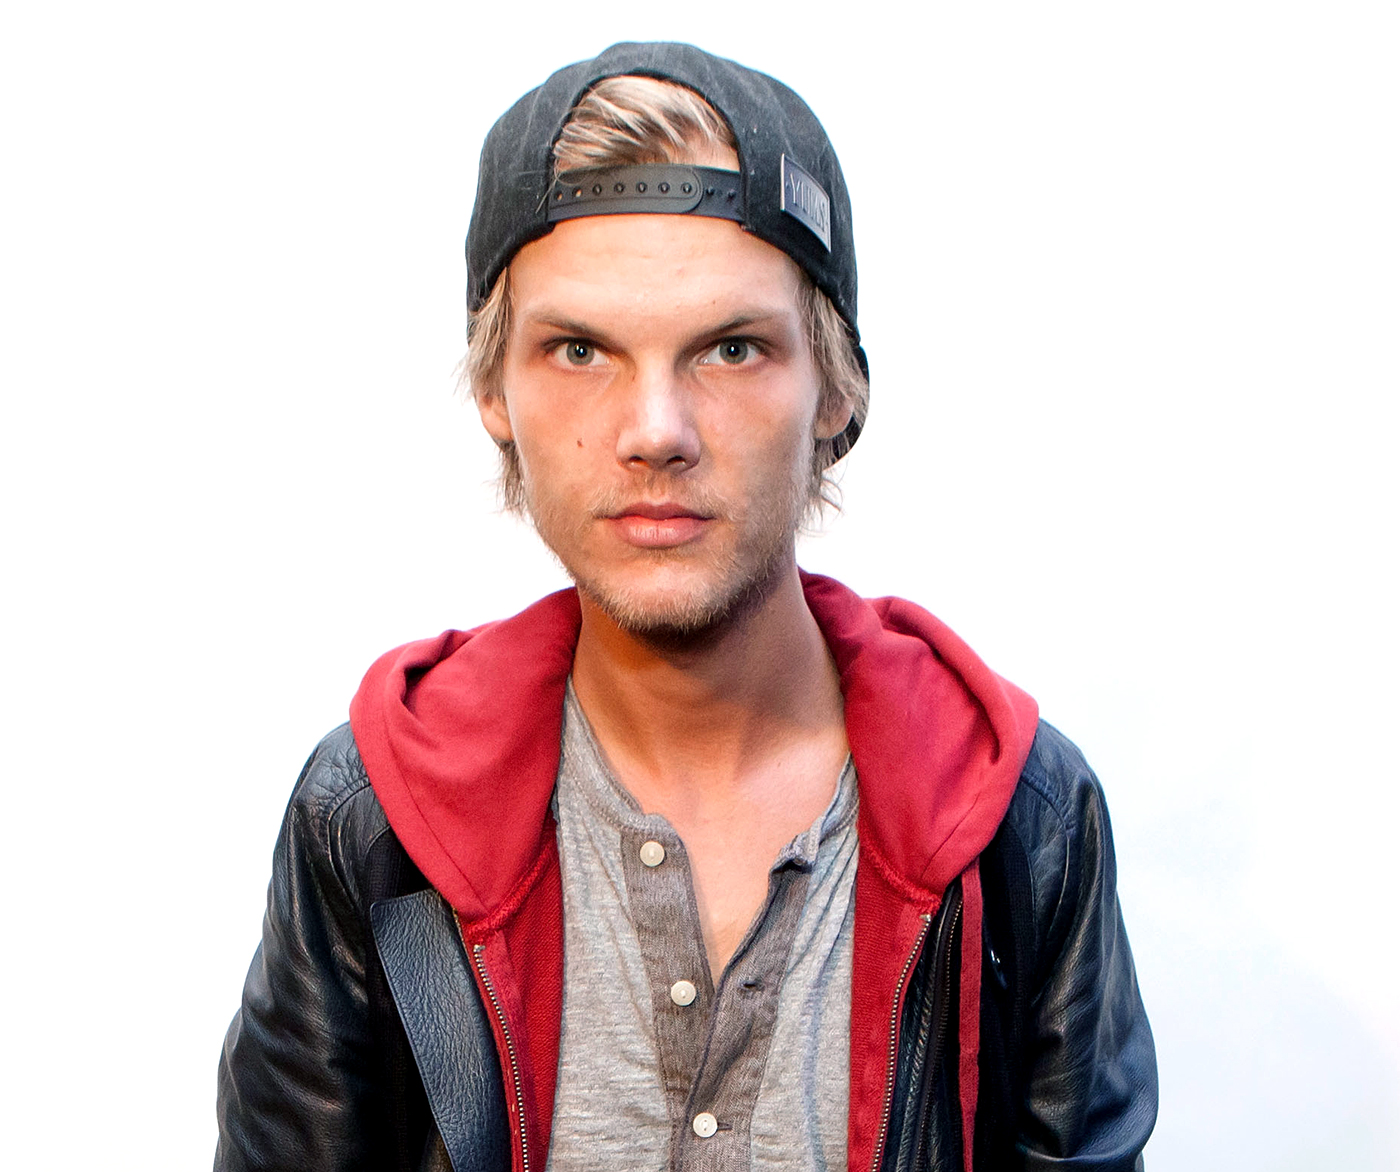 Take a few minutes and read the Avicii stories and memories people have shared from all over the world